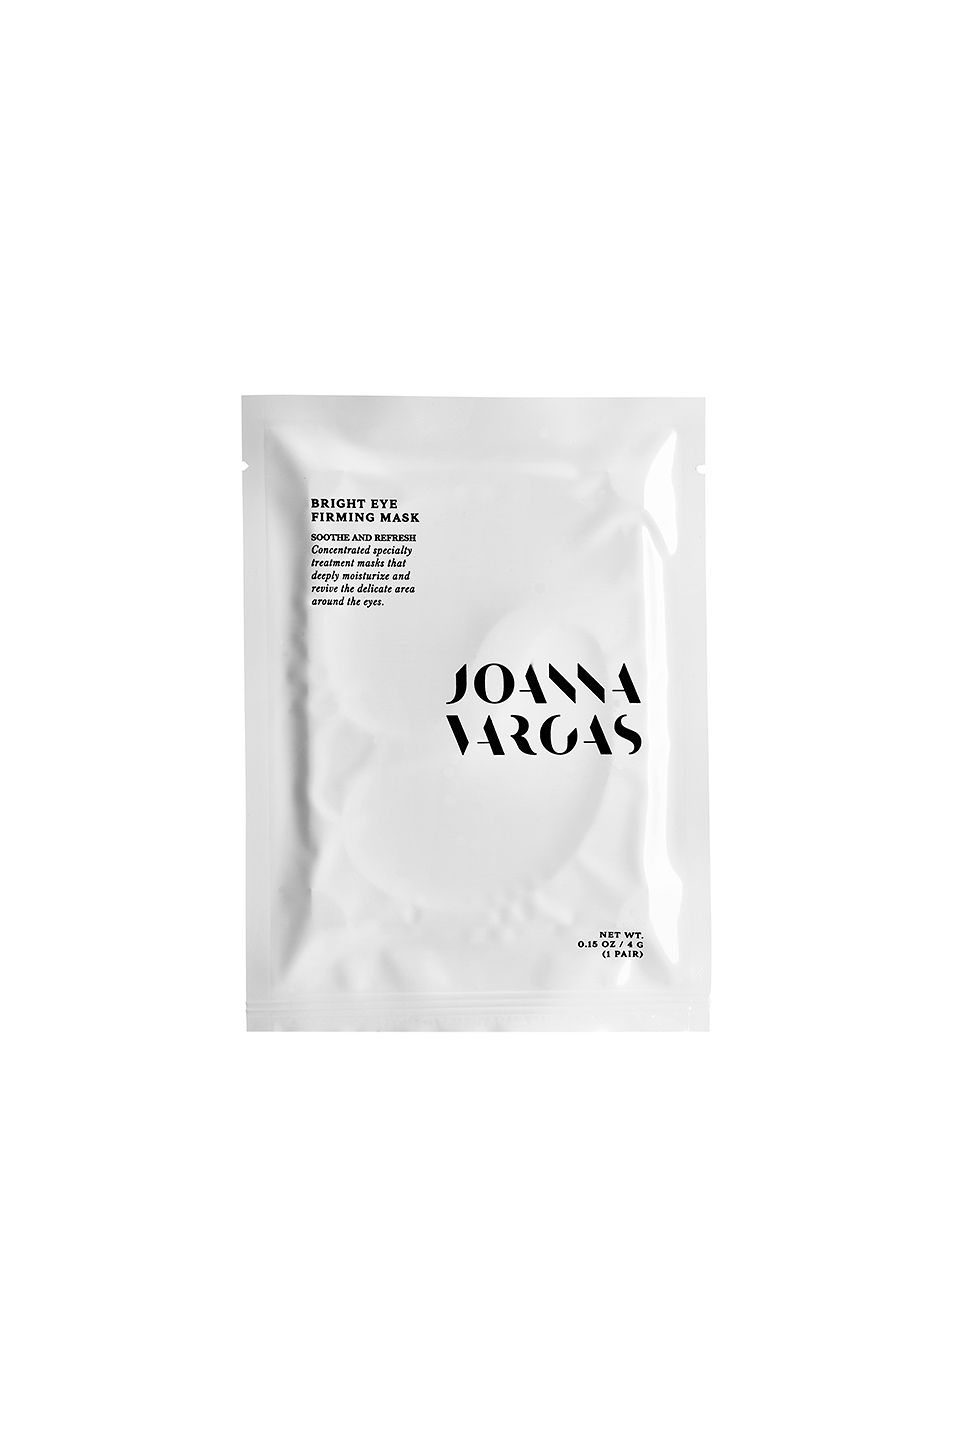 Joanna Vargas Bright Eye Firming Mask in